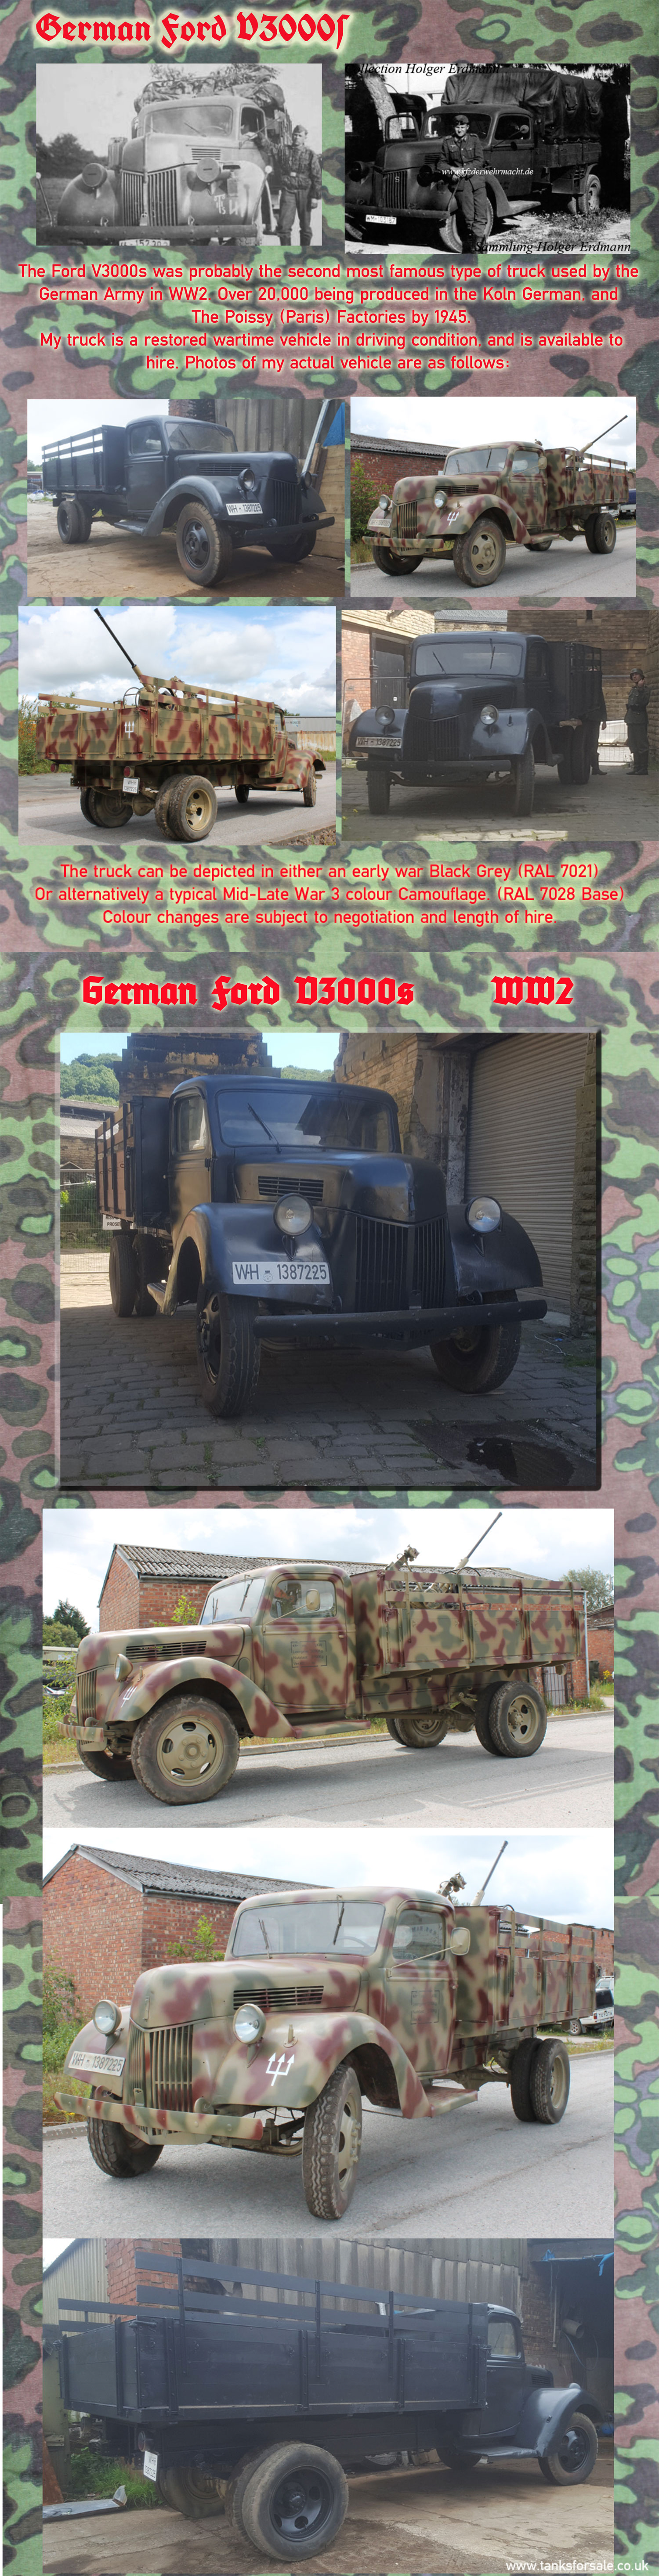 German Truck Ford V3000s details